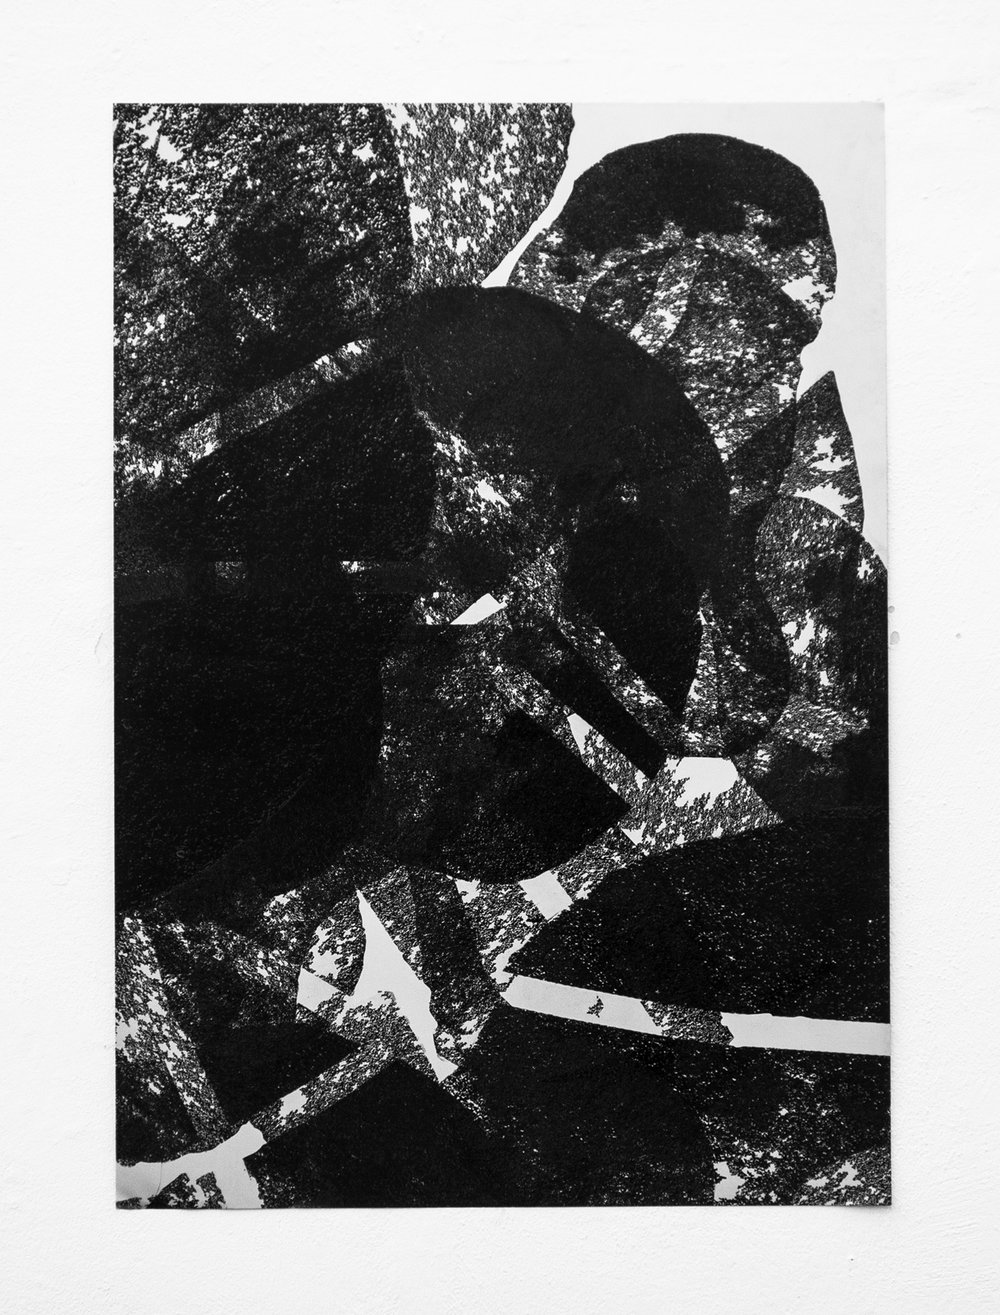 thermal plate 006, 2018